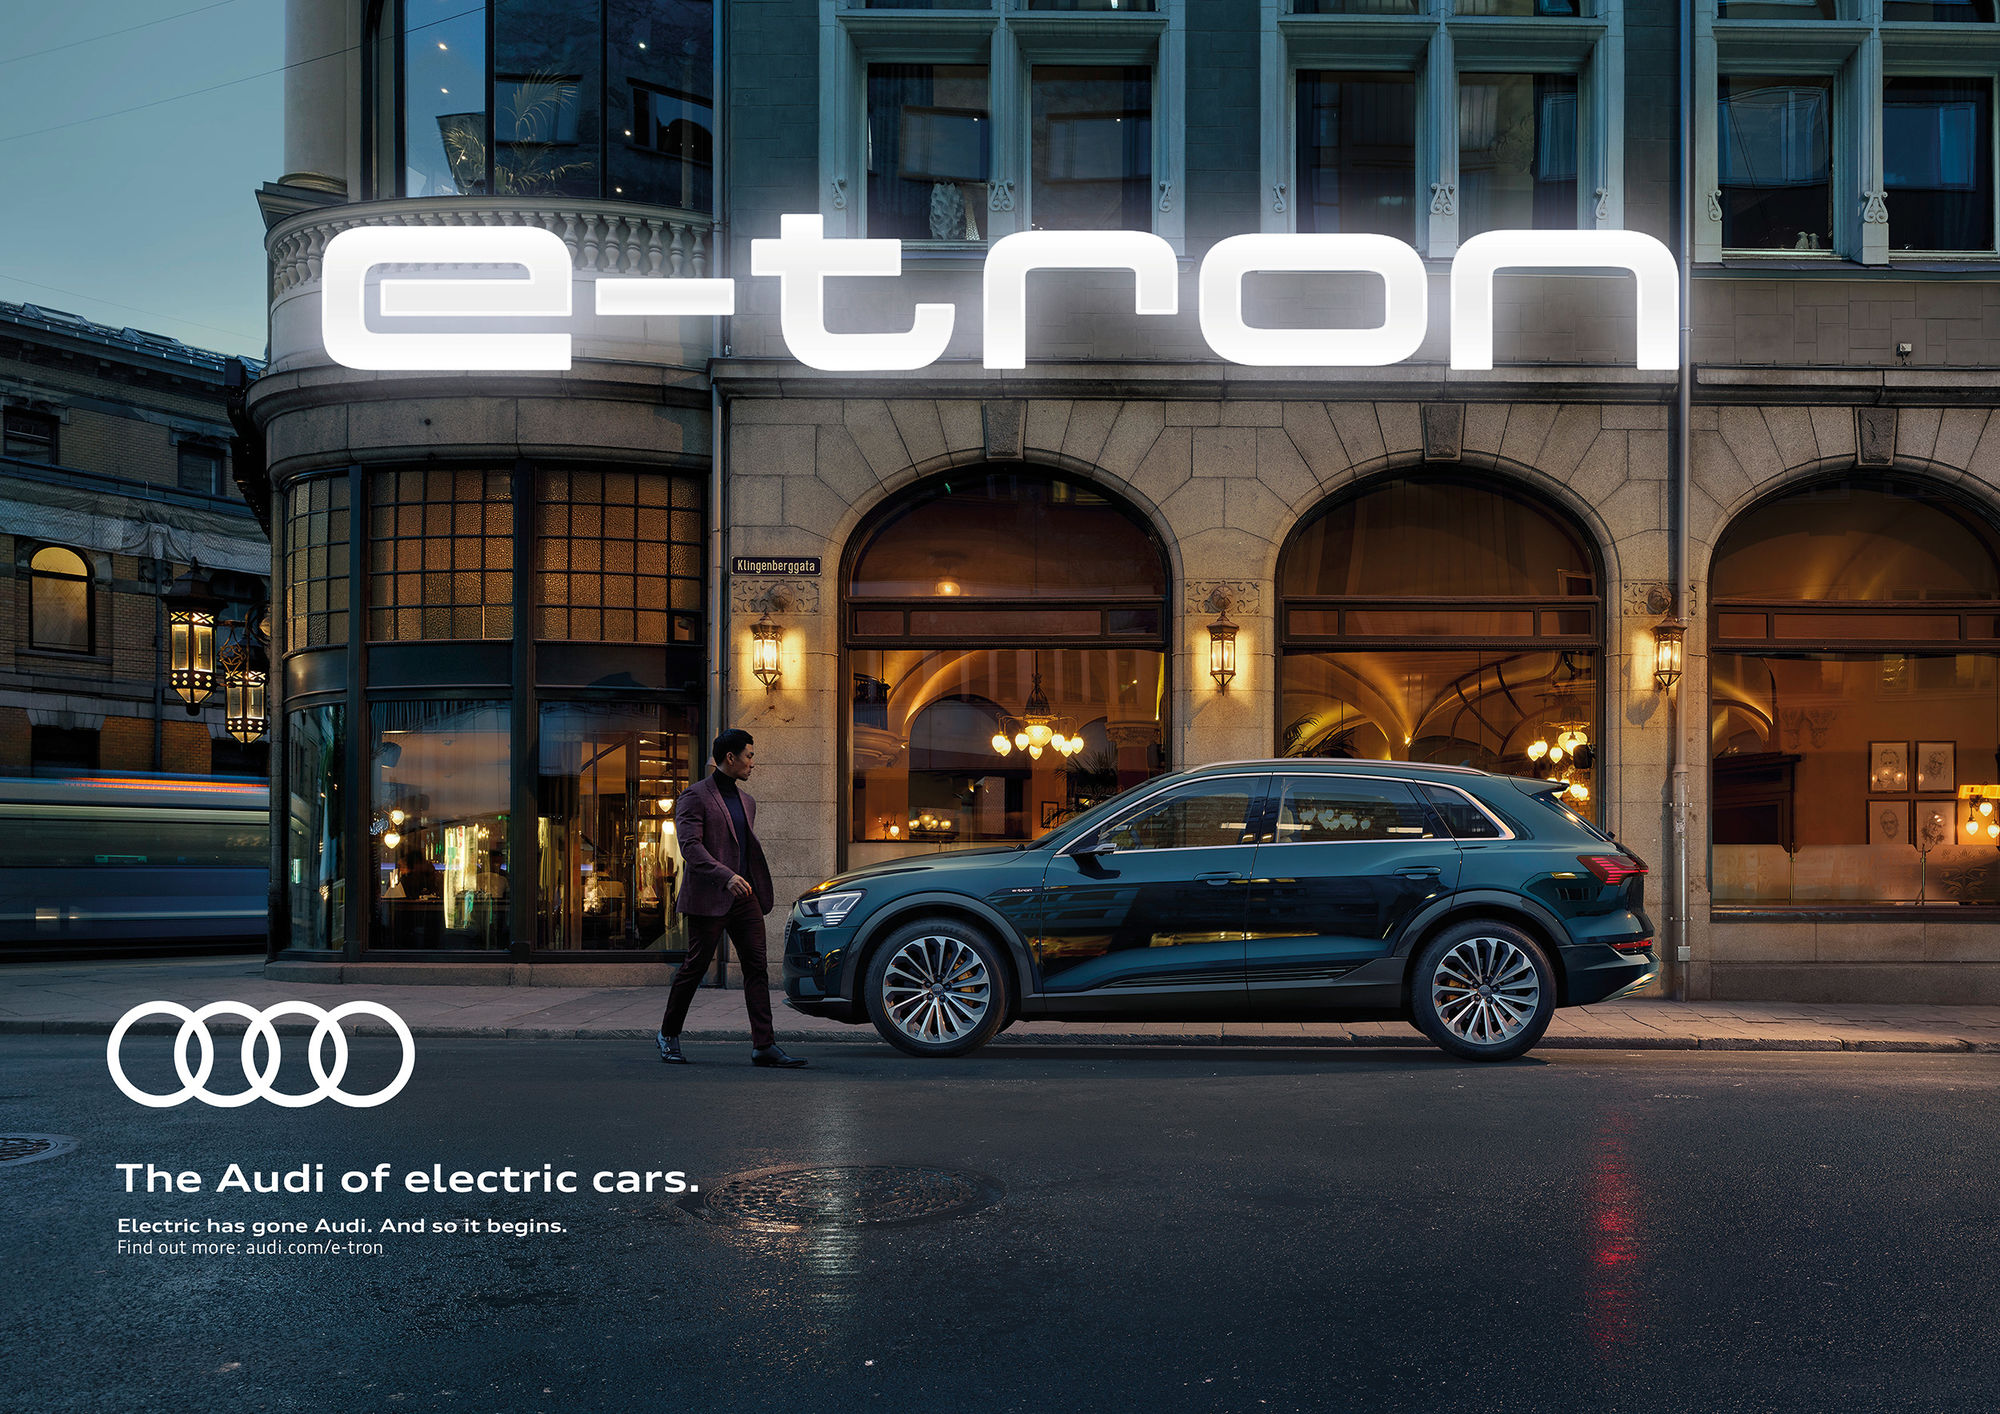 FRITHJOF OHM INCL. PRETZSCH international launch campaign for the first all-electric AUDI e-tron